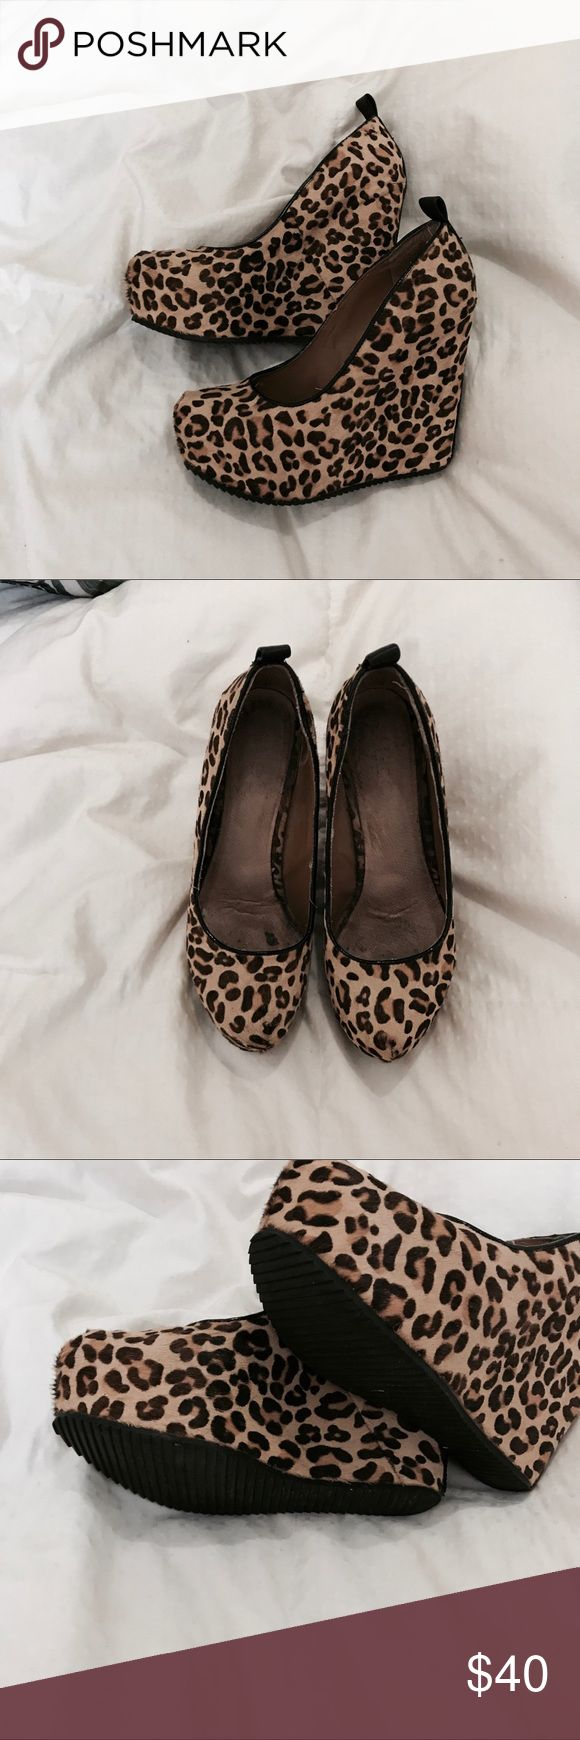 Aldo leopard wedges Leopard wedges with black contrast stripe in back about a 5 inch wedge with platform. Very easy to walk in! Aldo Shoes Wedges